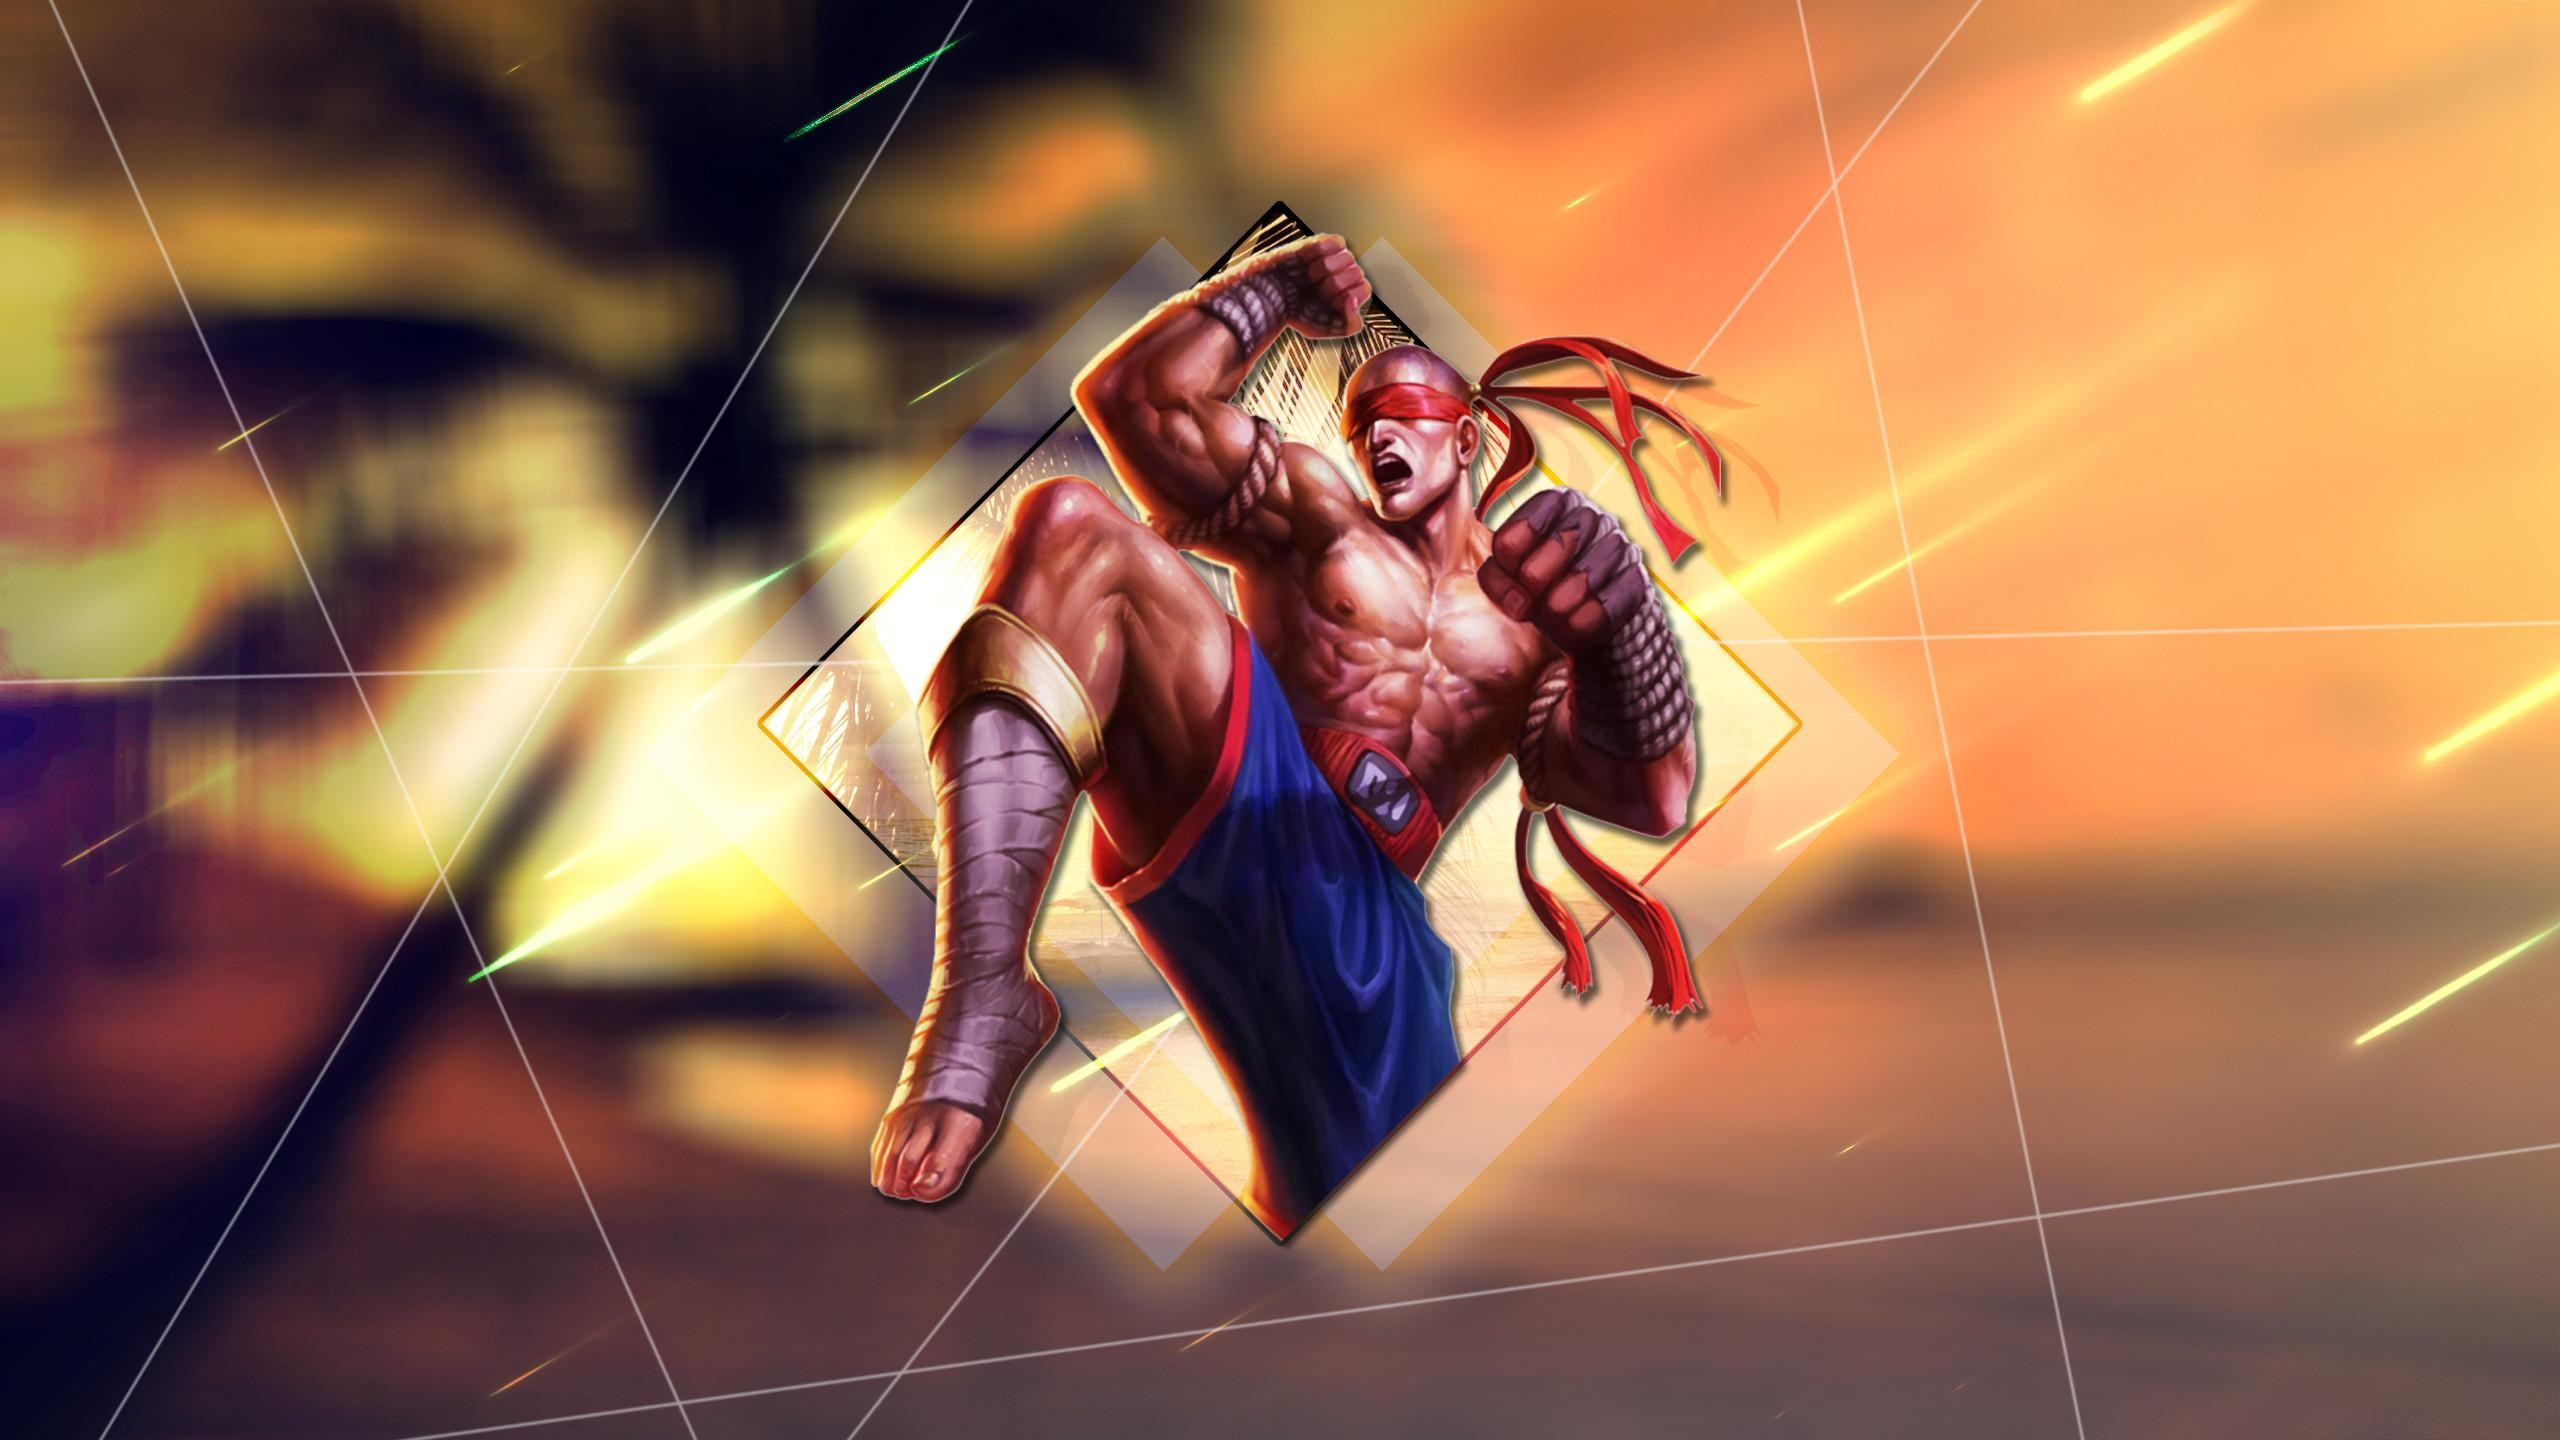 God Fist Lee Sin Wallpaper Posted By Ryan Cunningham